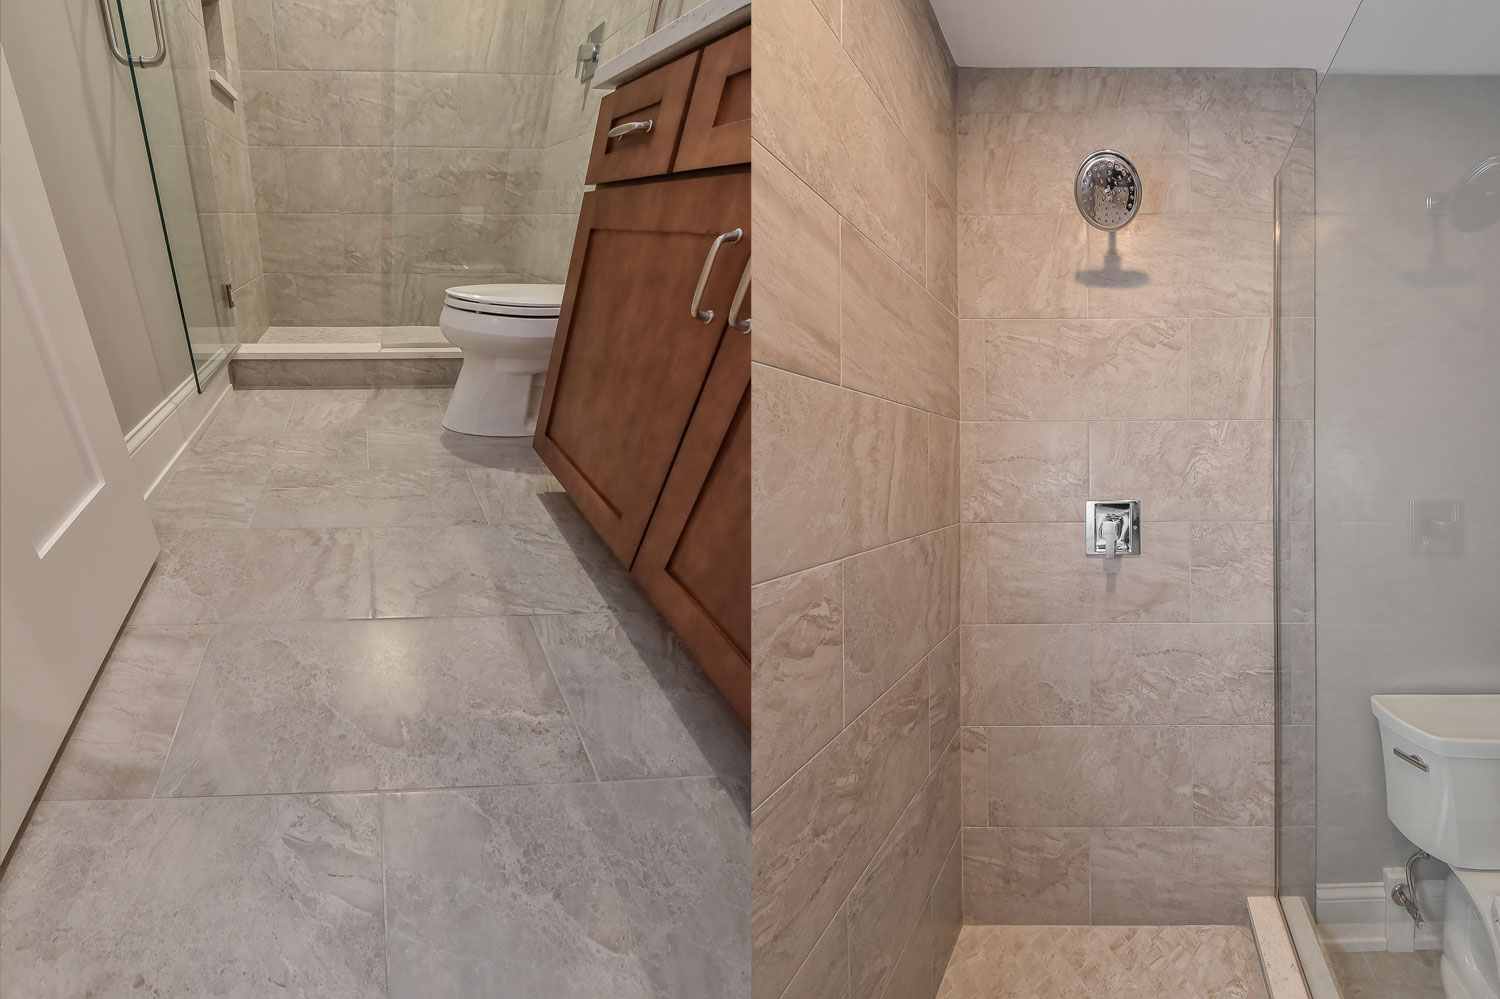 Naperville Hall Bathroom Remodel Pictures Home Remodeling Contractors Sebring Services